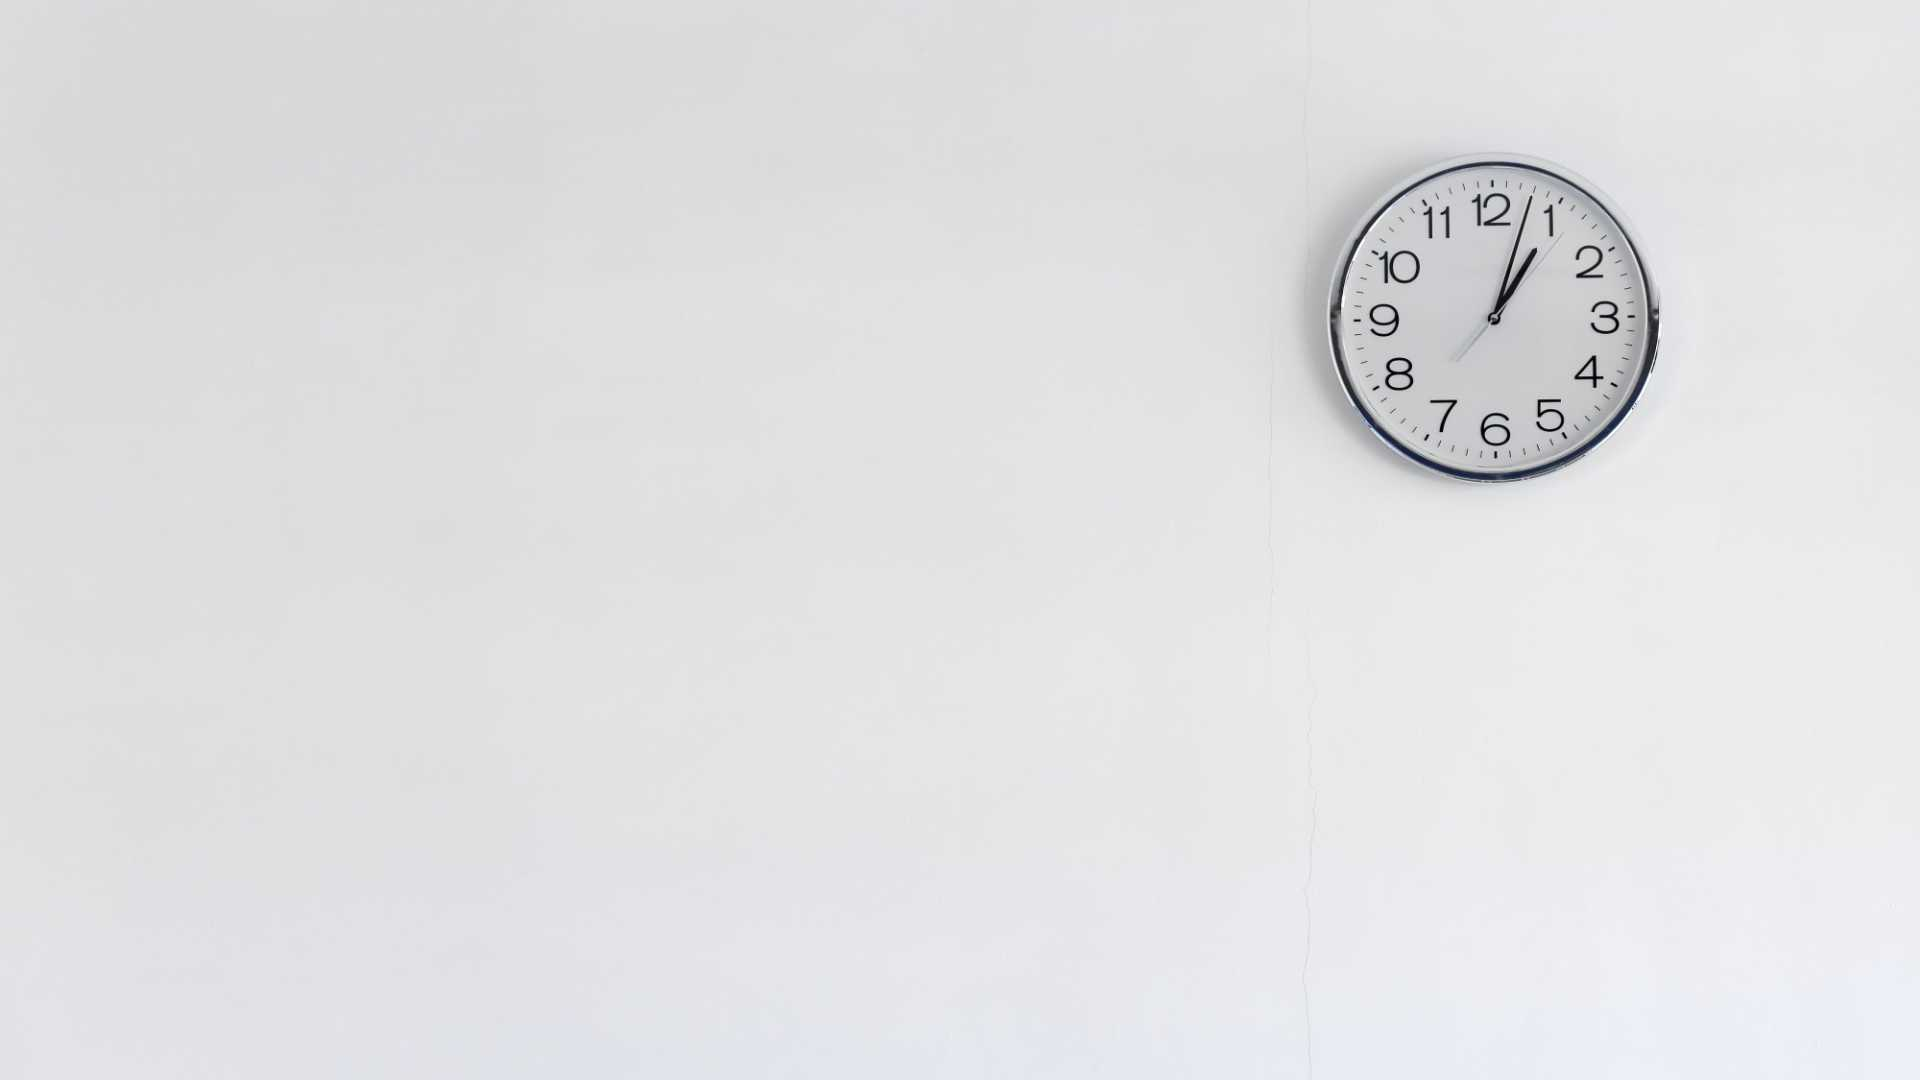 We're Doing Time Management All Wrong. To Free Up More Time, Tackle Your To-Do List With These 4 Questions in Mind